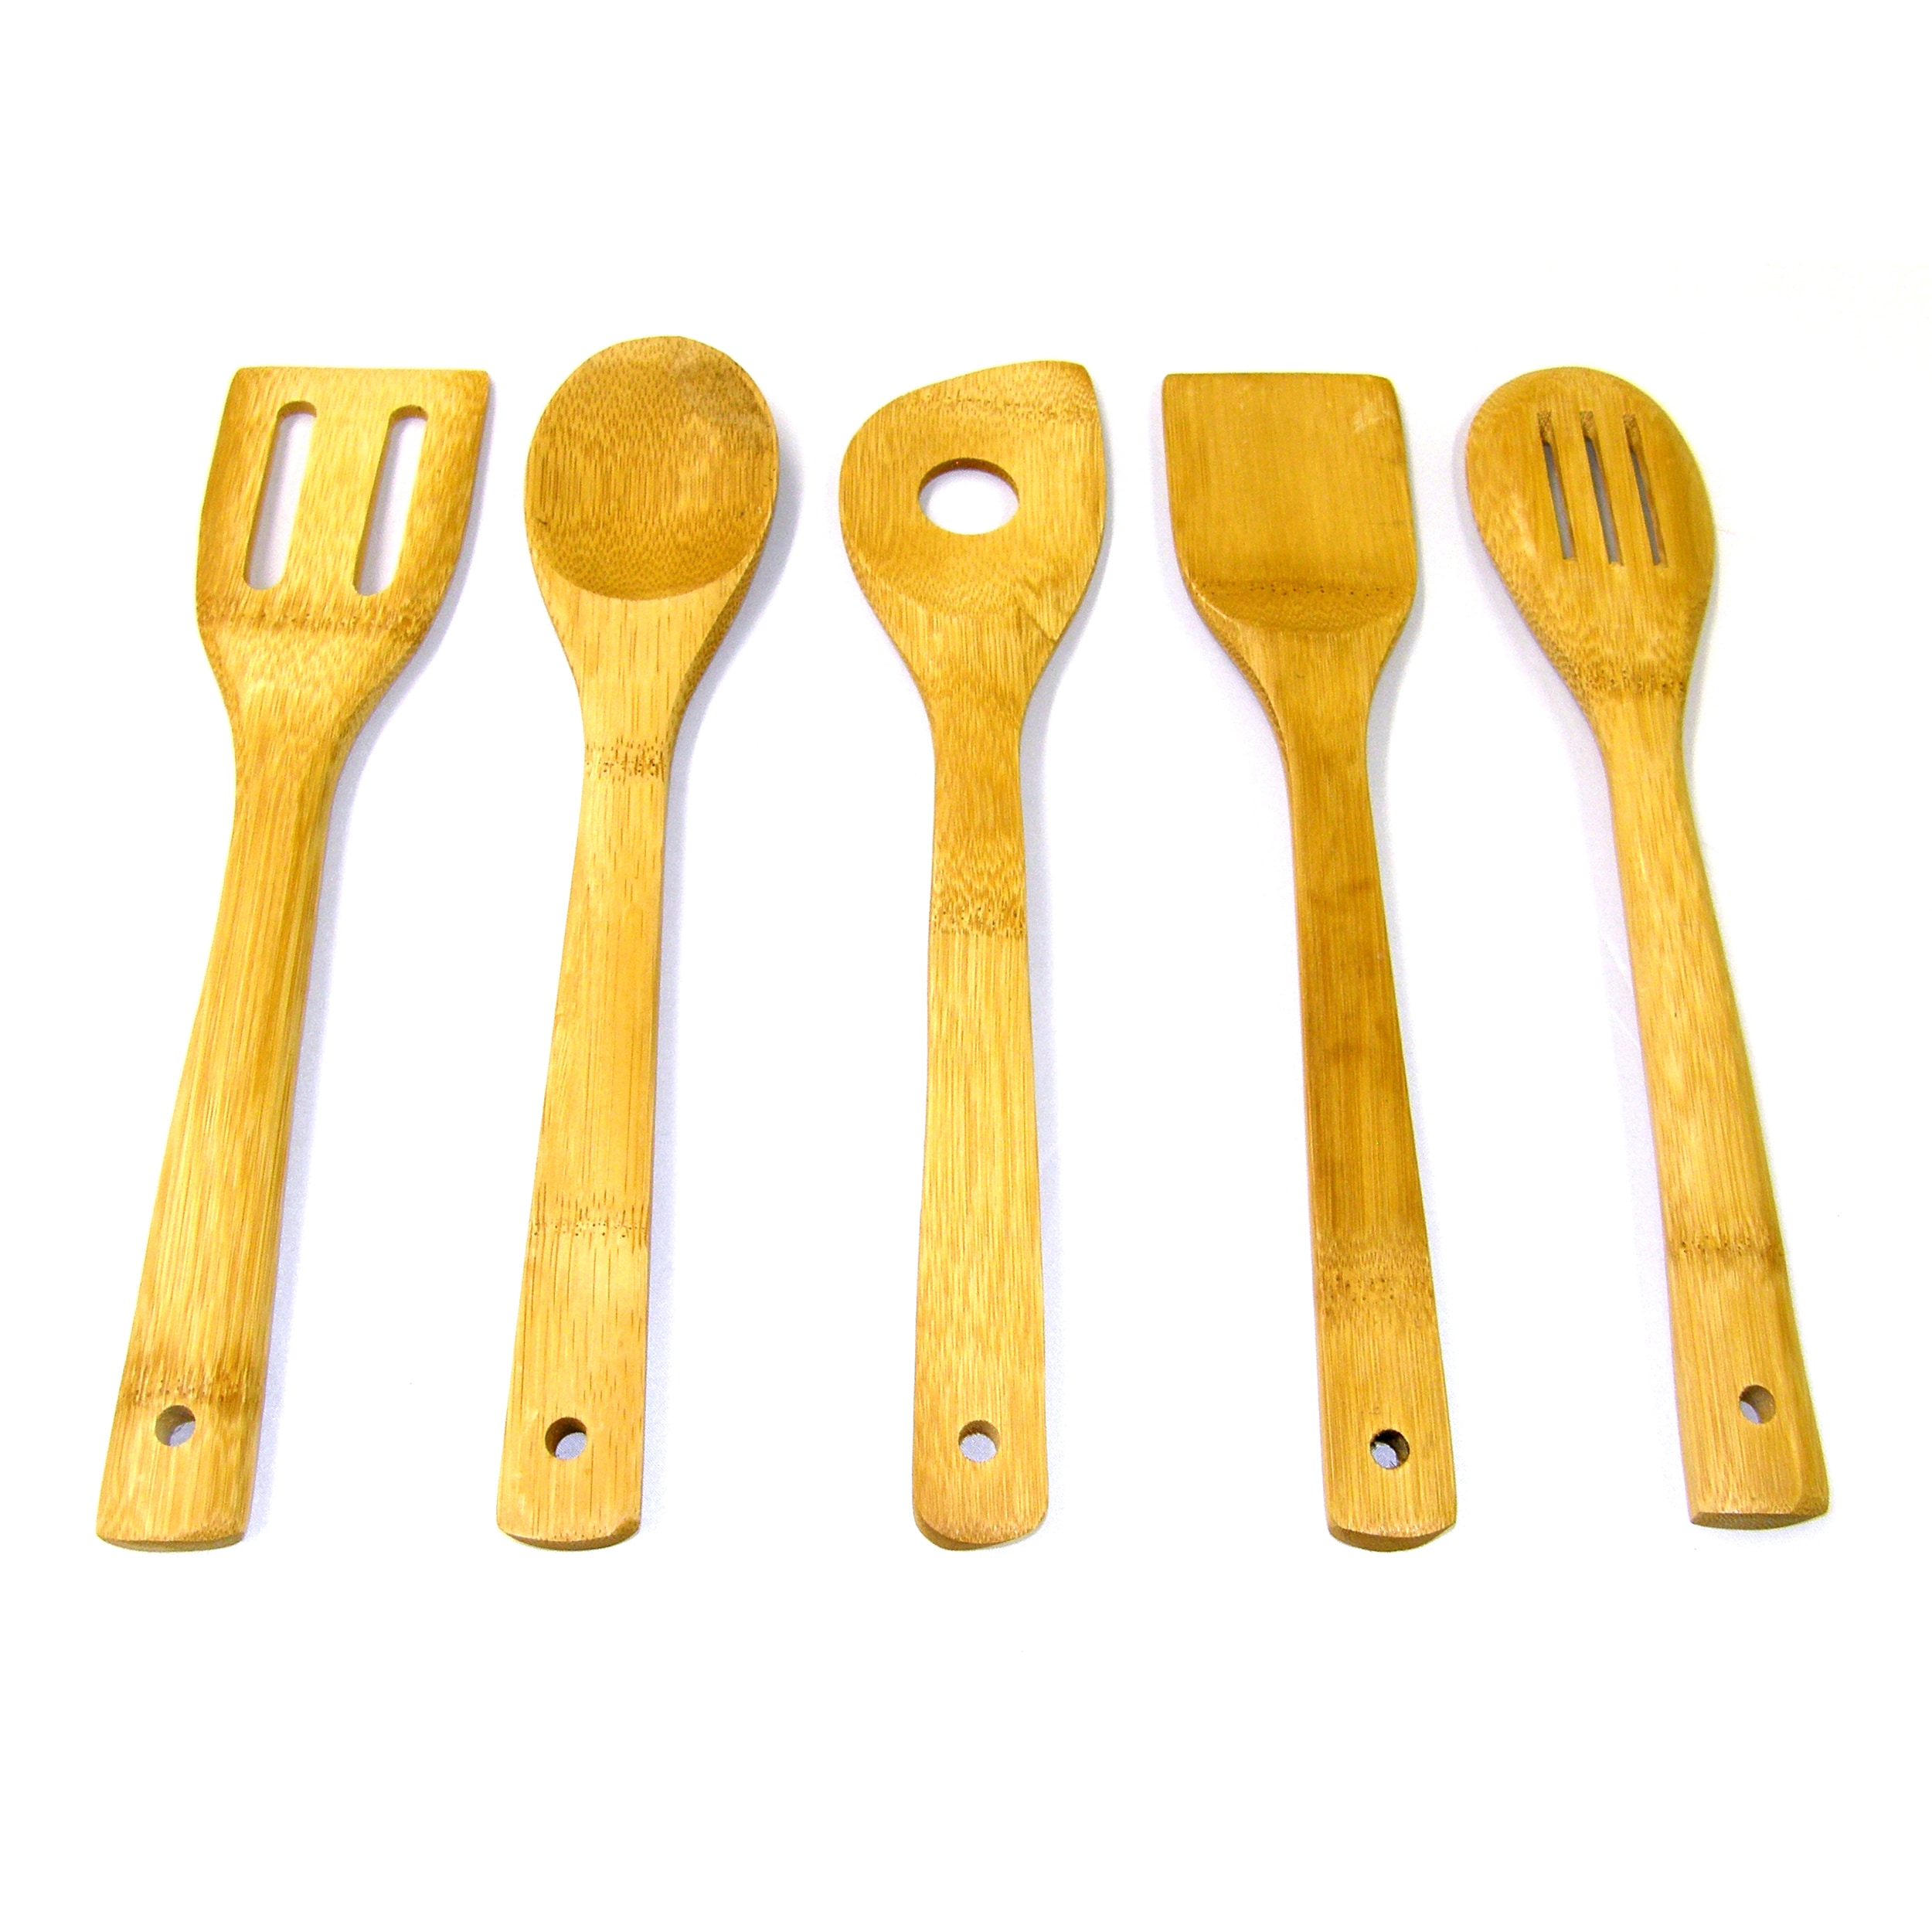 Prime Pacific 5 Piece Eco Freindly Bamboo Kitchen Tool Set Overstock 6095217